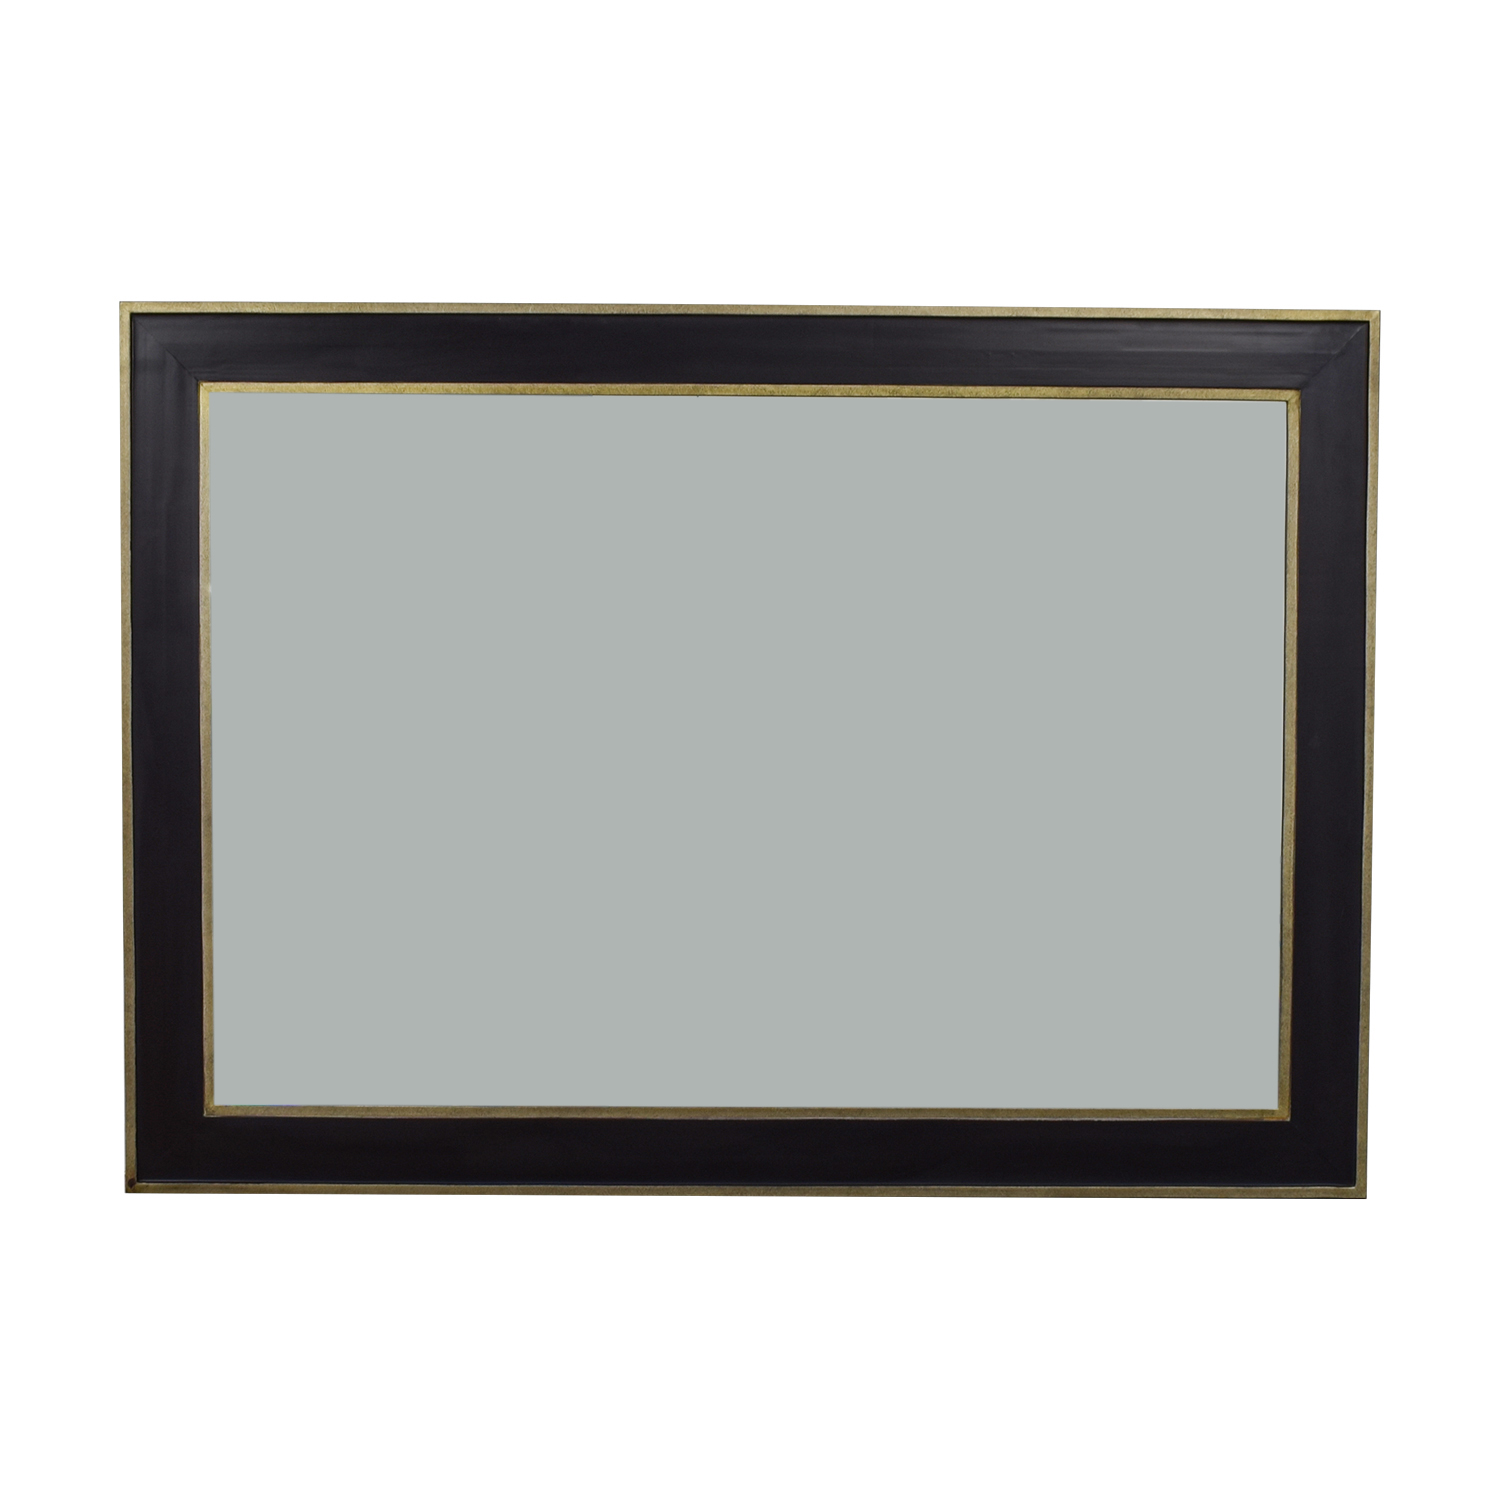 Coaster Coaster Large Scale Wall Mirror for sale